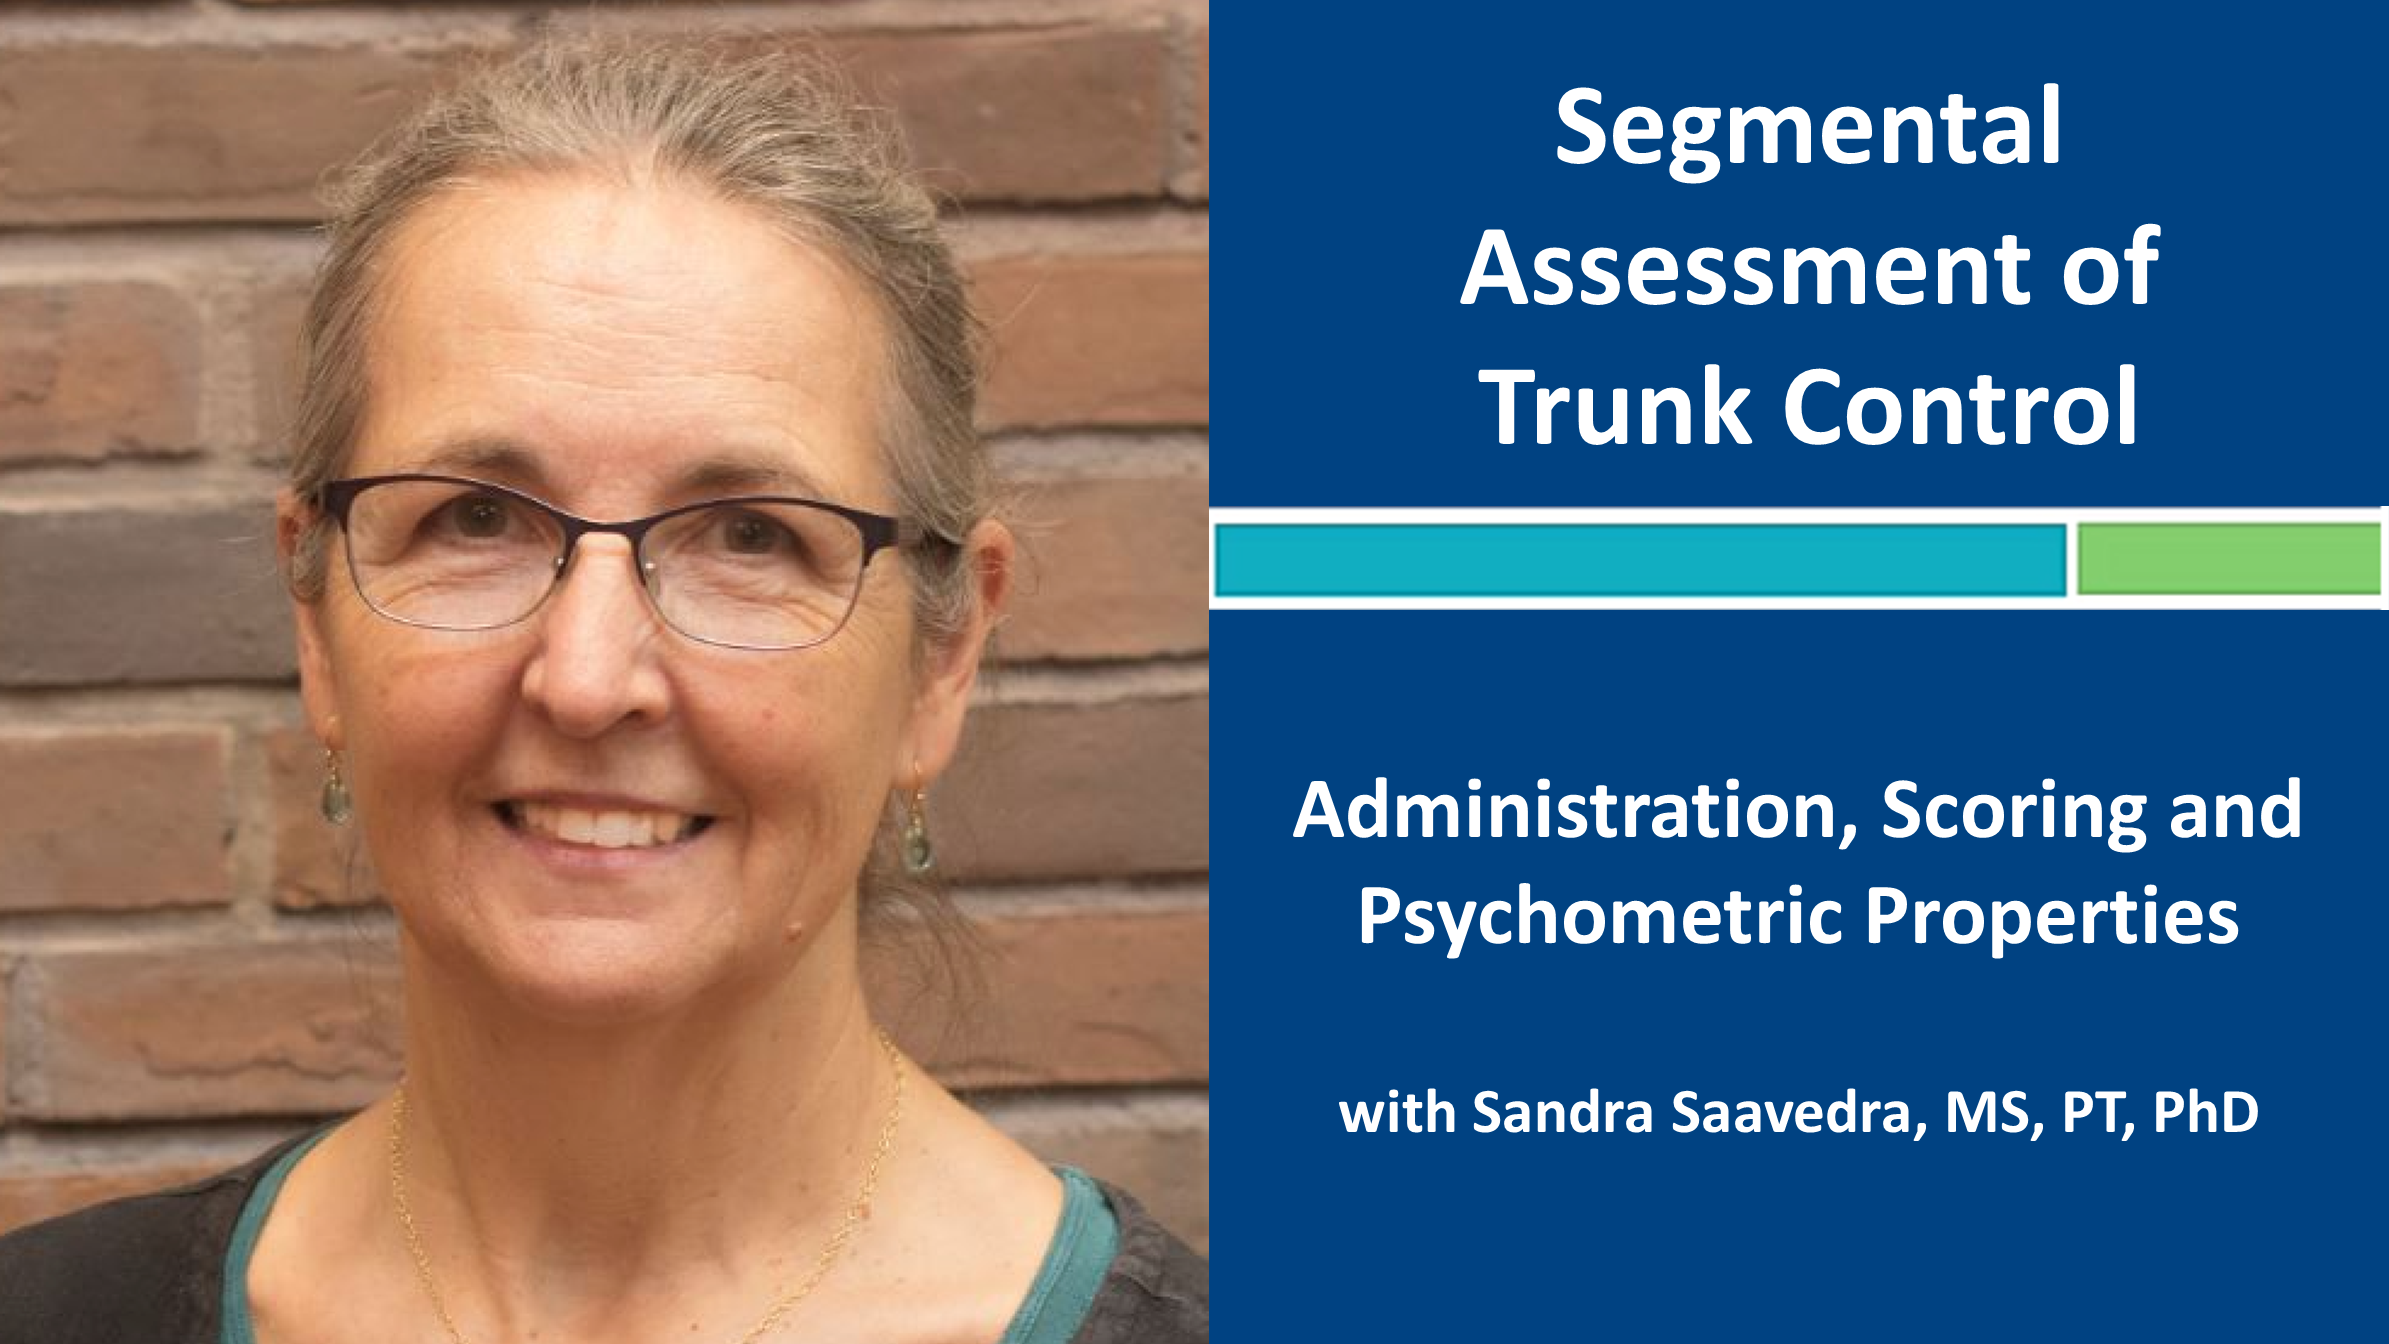 Segmental Assessment of Trunk Control (SATCo): Administration, Scoring and Psychometrics with Sandra Saavedra, MS, PT, PhD